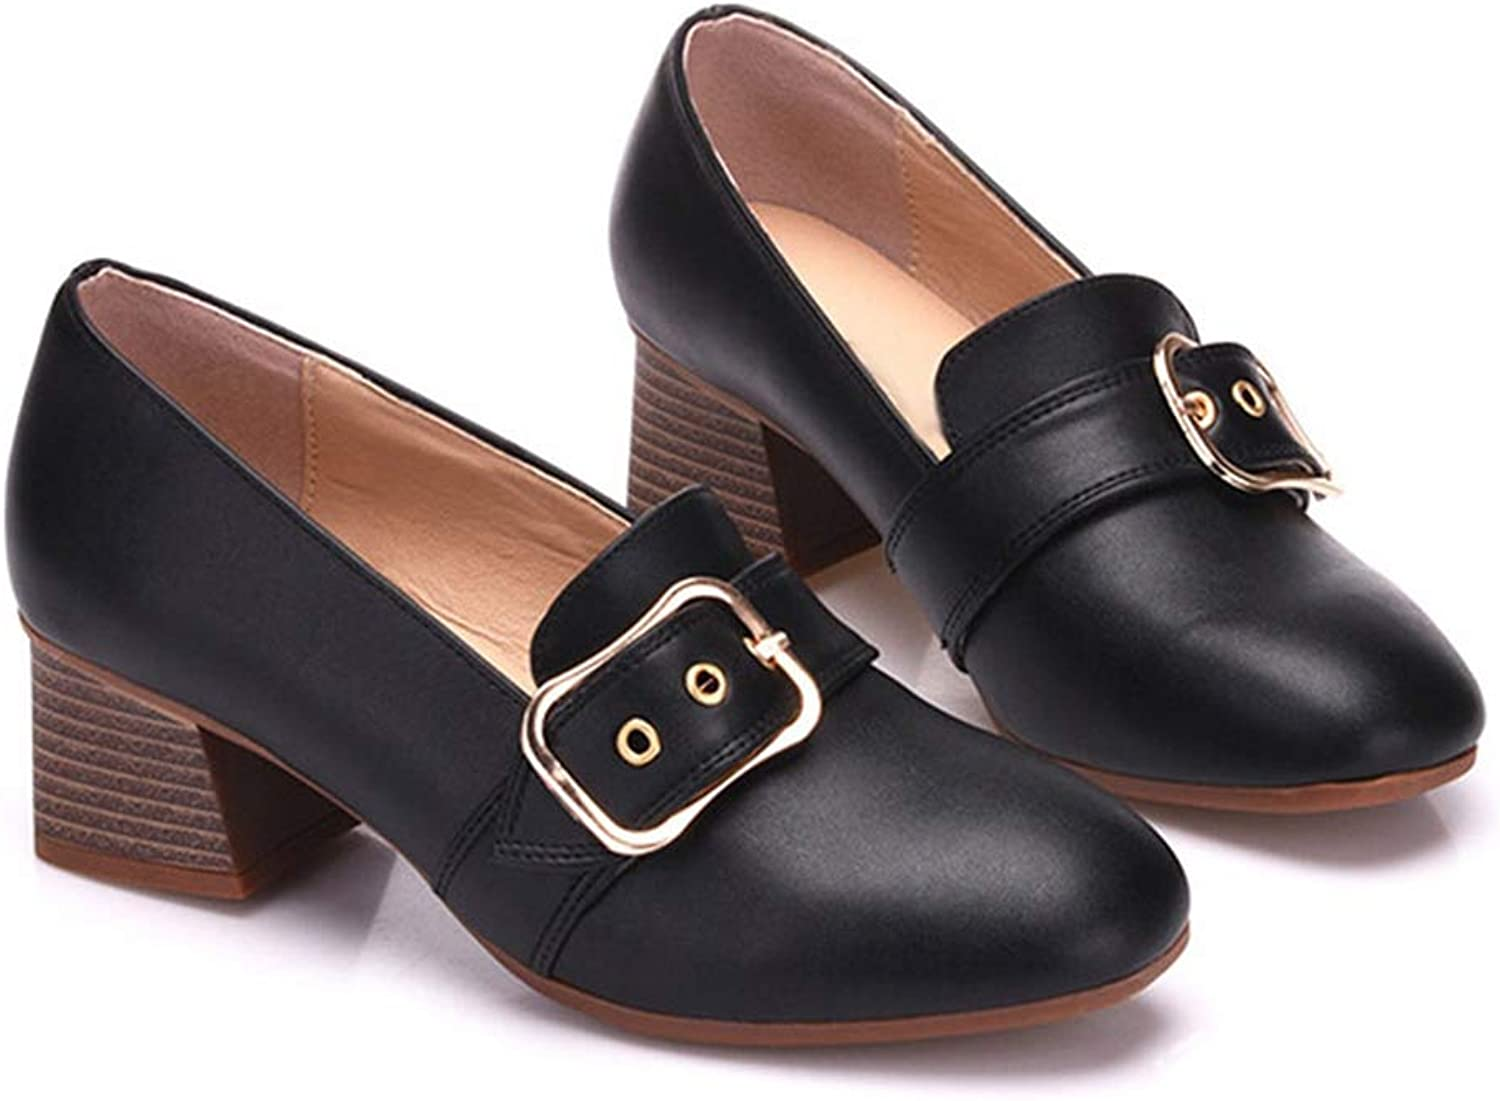 Women High Heels Loafers Genuine Leather Boat shoes Lady Buckle Square Heel shoes Slip On Footwear